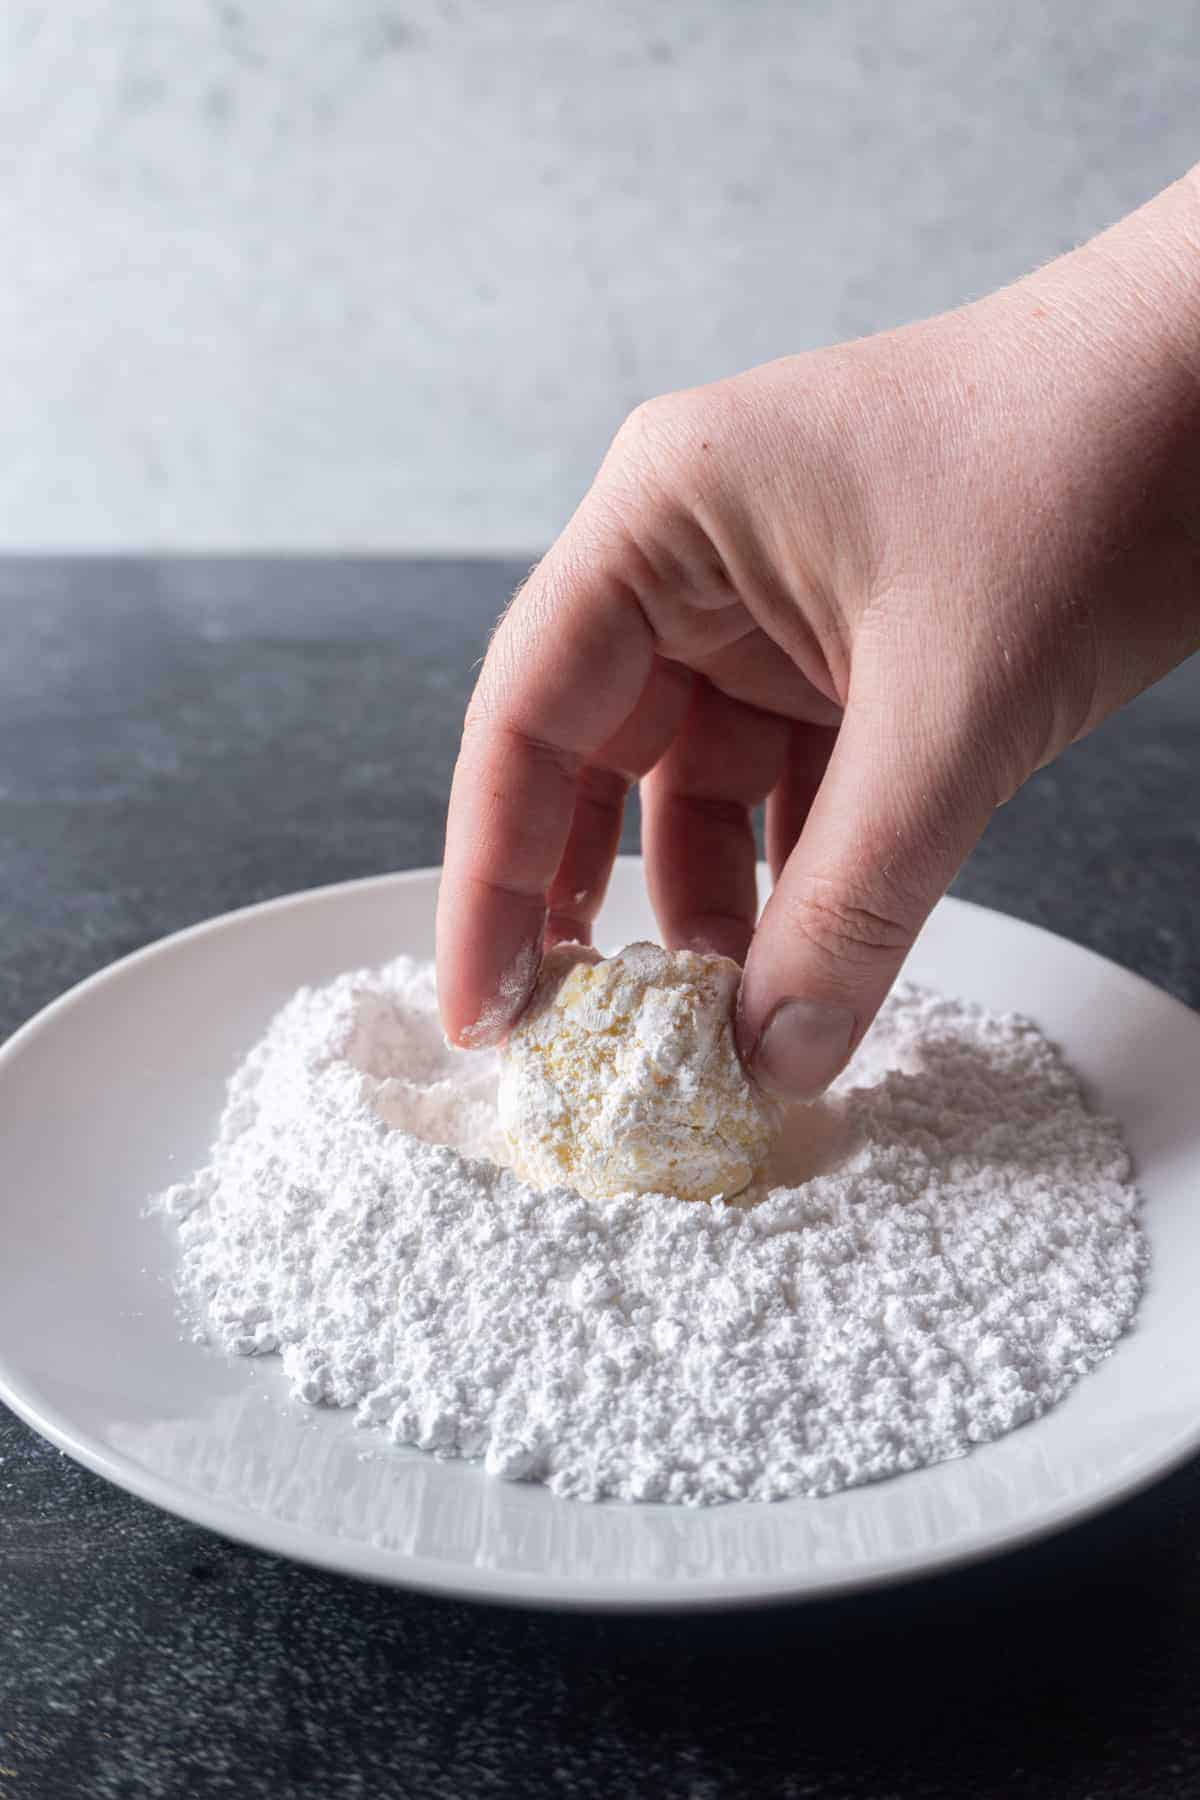 Cookie do being rolled in powdered sugar